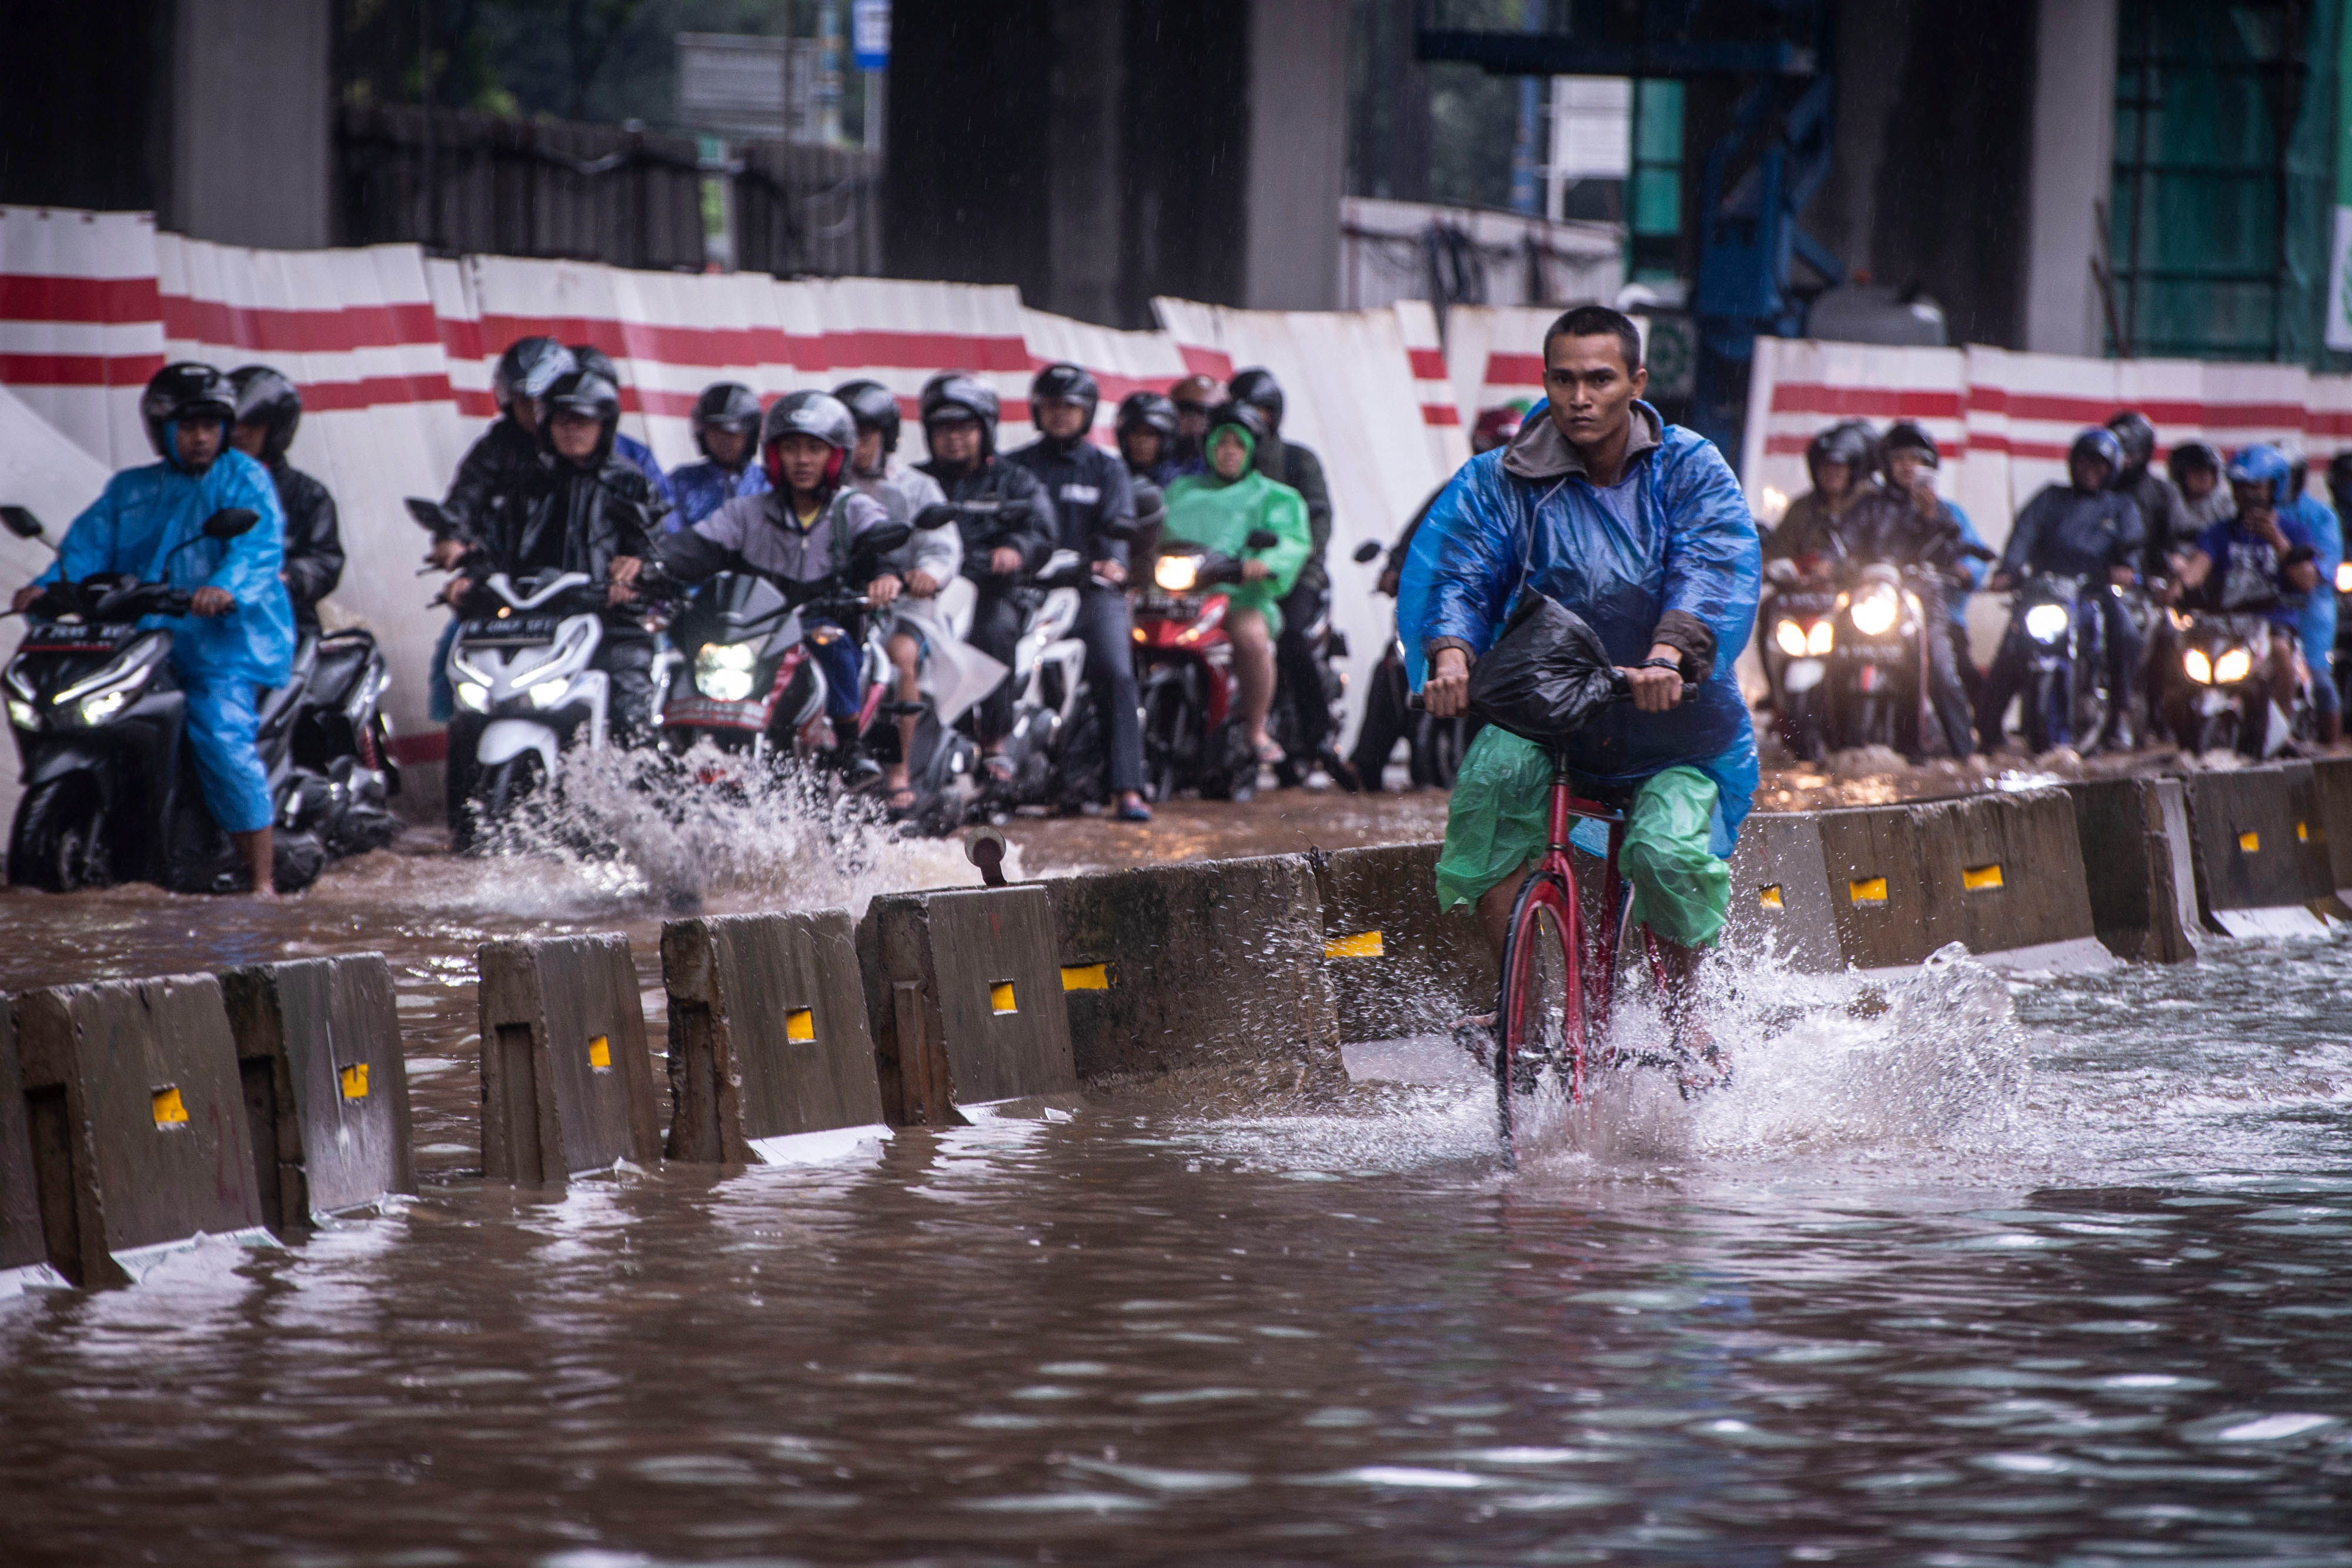 A cyclist rides alongside motorcyclists along a flooded street in Jakarta, Indonesia, February 25, 2020 in this photo taken by Antara Foto. Photo: Reuters